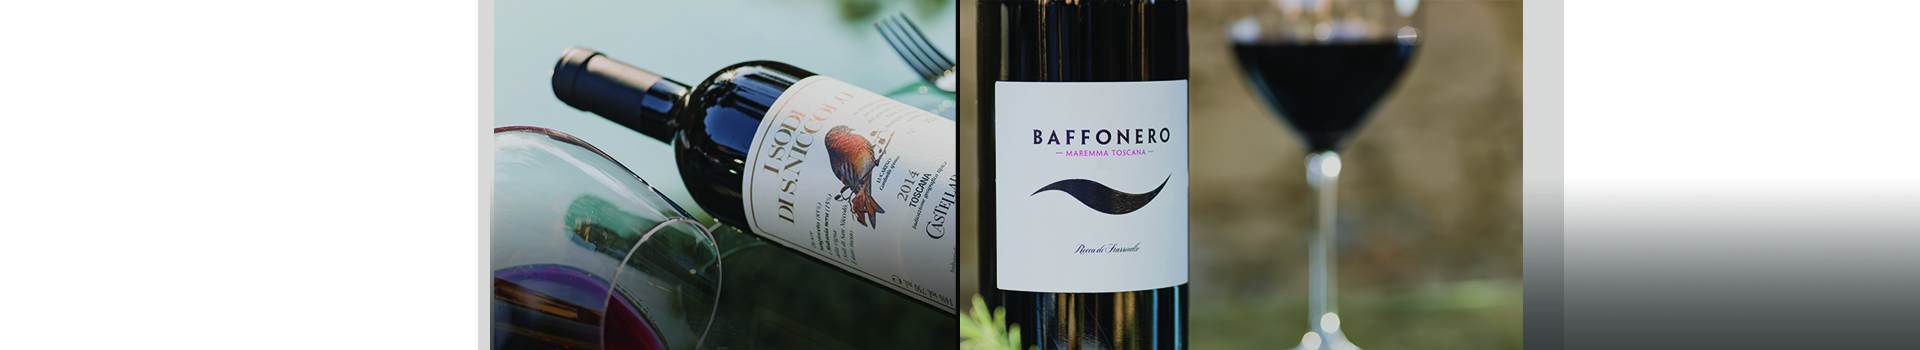 I SODI DI S. NICCOLO' 2014 AND BAFFONERO 2016AMONG THE 10 BEST ITALIAN RED WINES